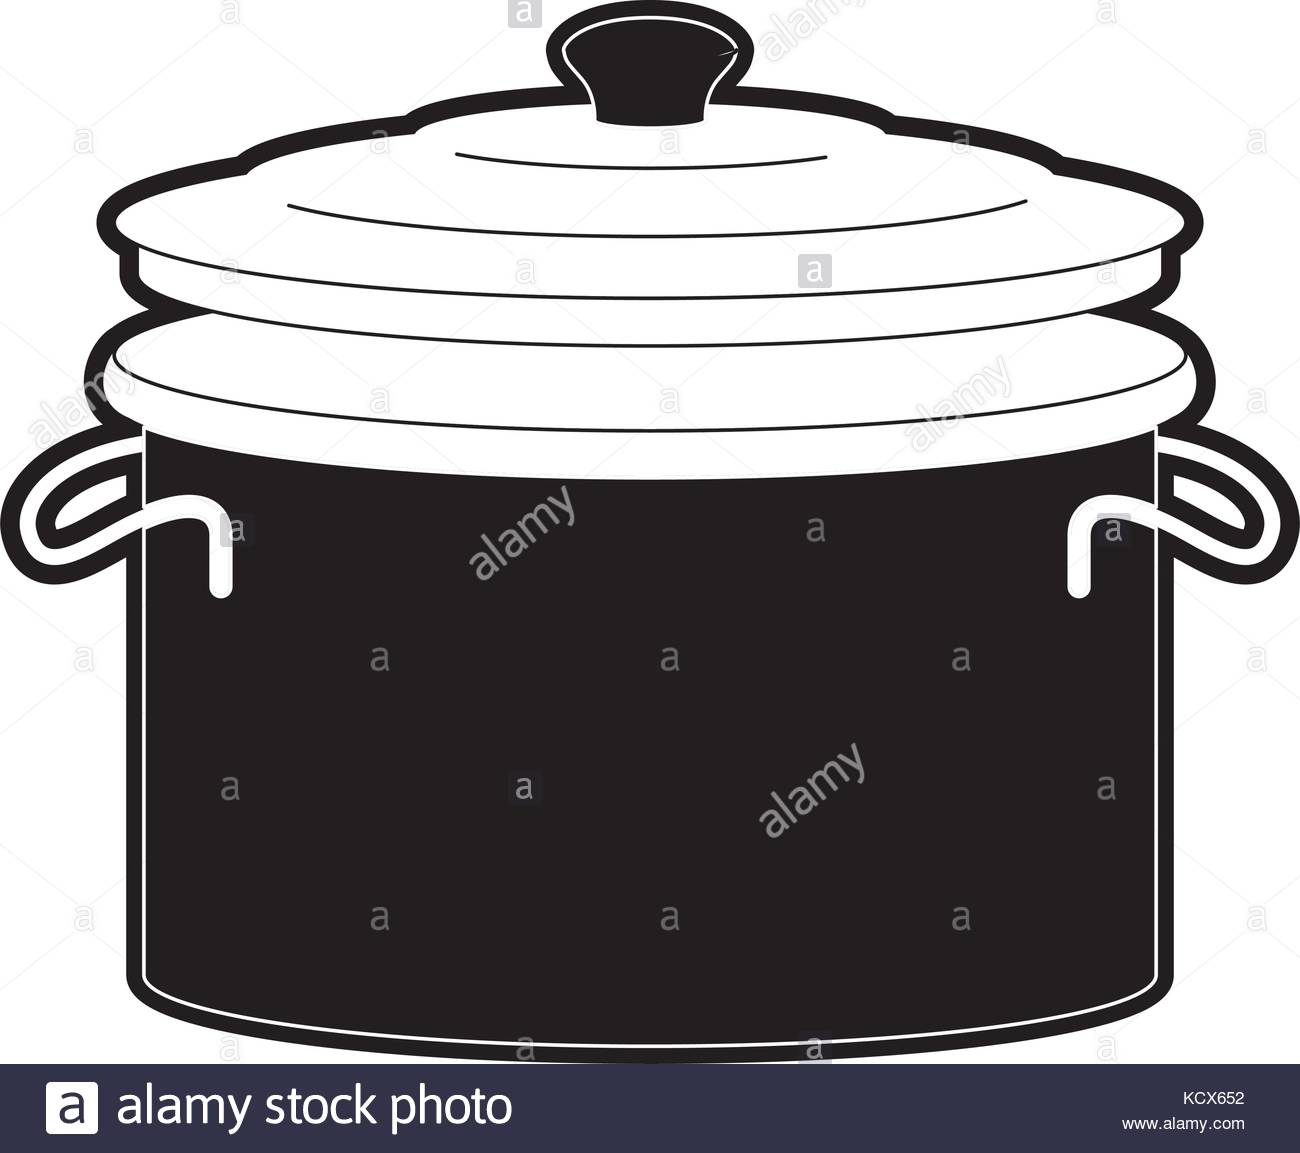 1300x1153 Cooking Pot With Lid Black Silhouette Stock Vector Art